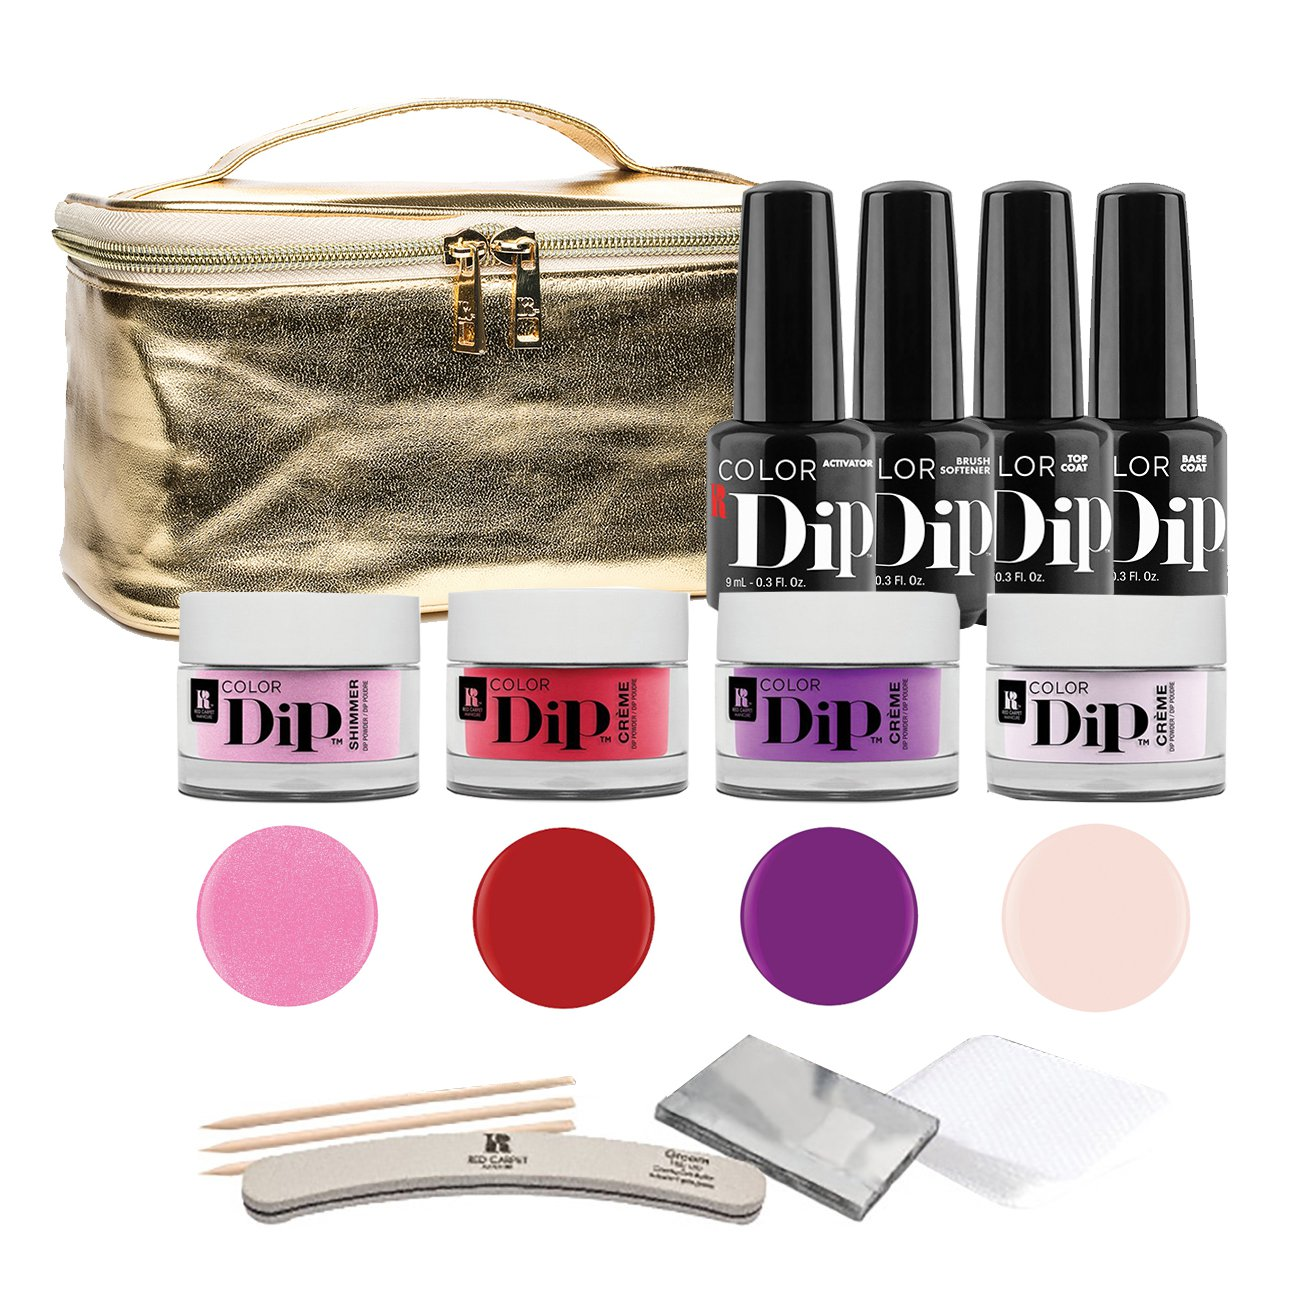 Red Carpet Manicure Color Dip Powder Starter Kit + Purple, Red, & Pink Colors